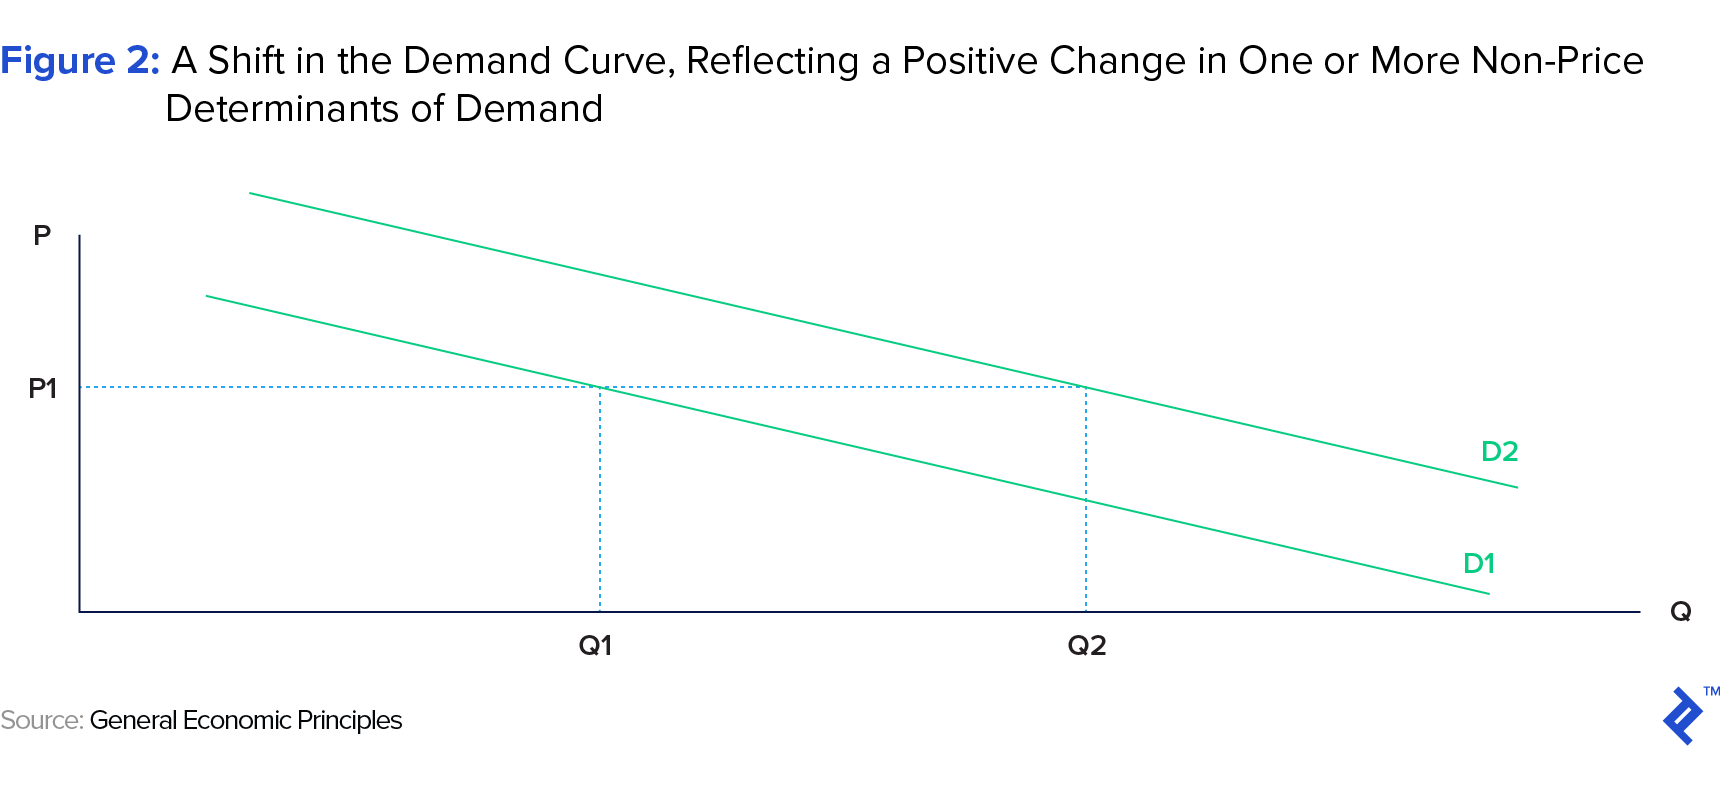 Figure 2: A Shift in the Demand Curve, Reflecting a Positive Change in One or More Non-price Determinants of Demand